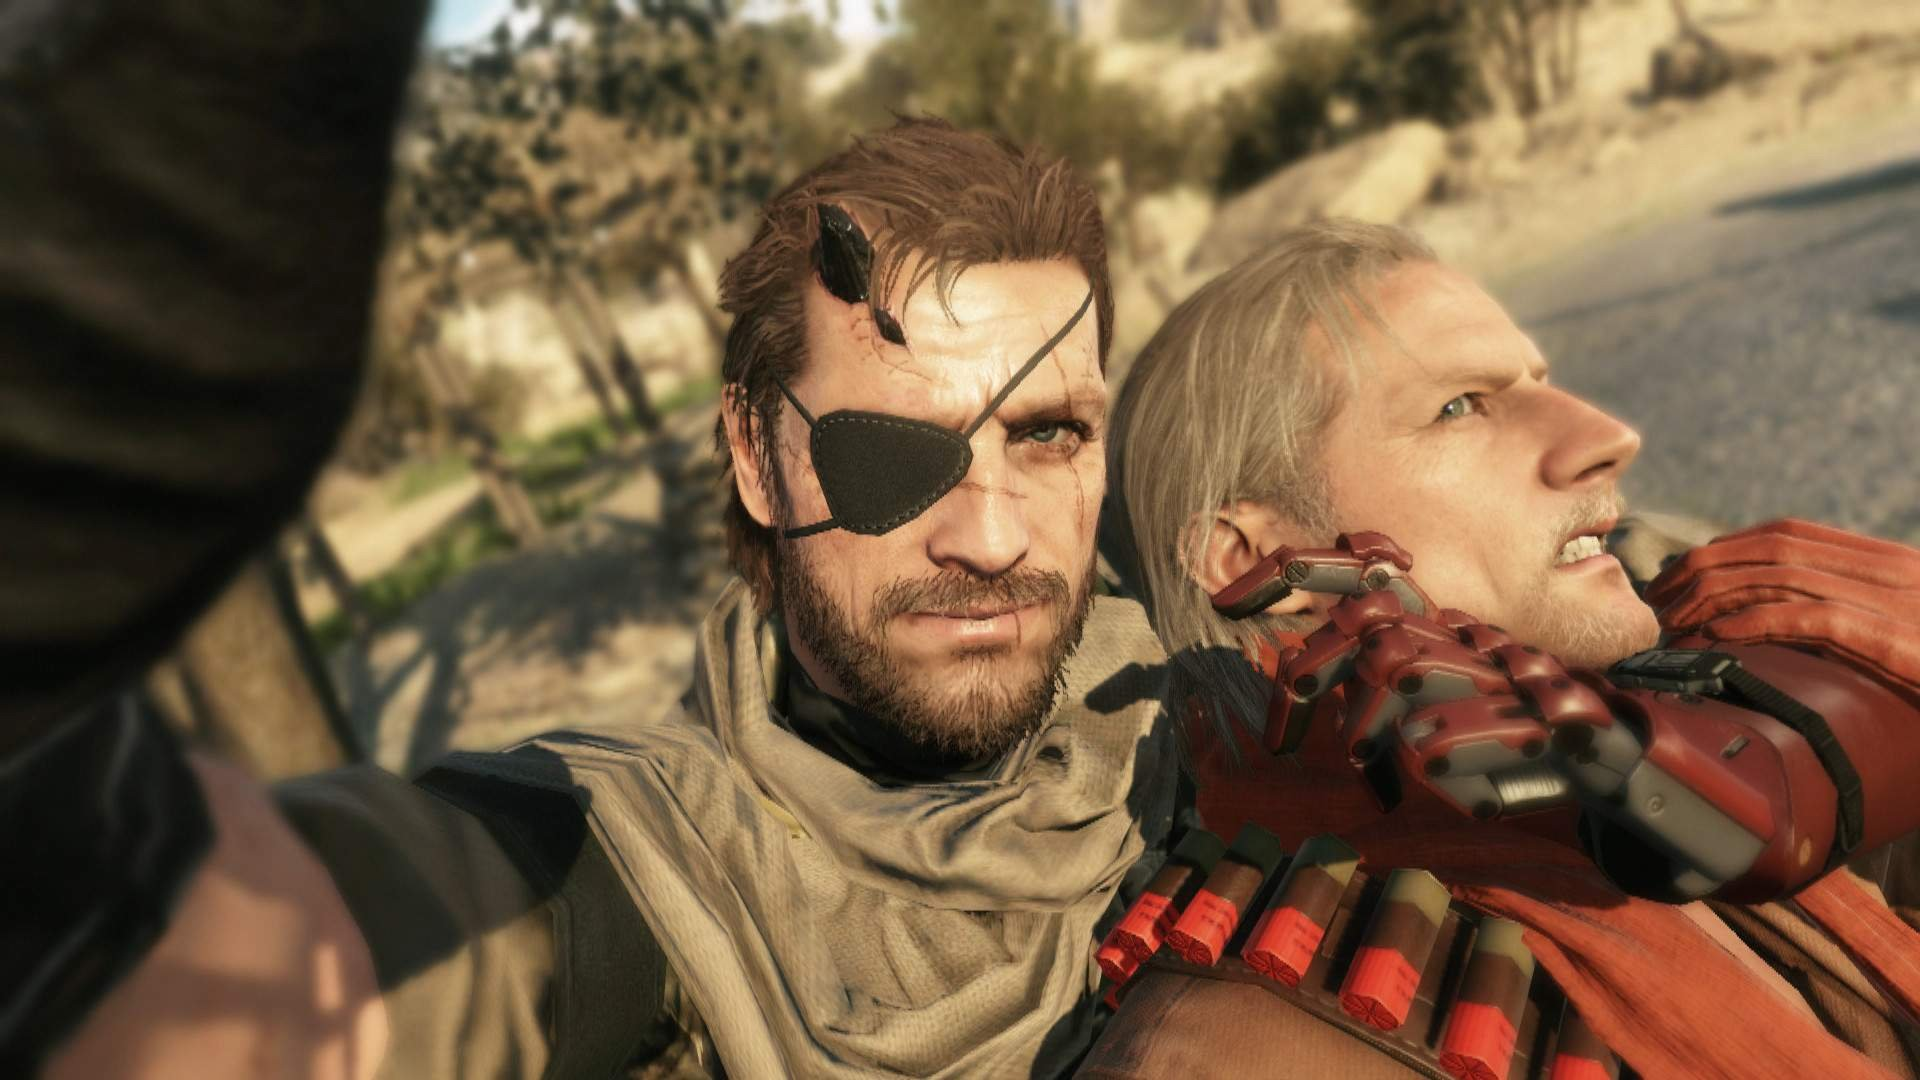 The Phantom Pain and Amnesia: Collection kick off the October PS Plus lineup